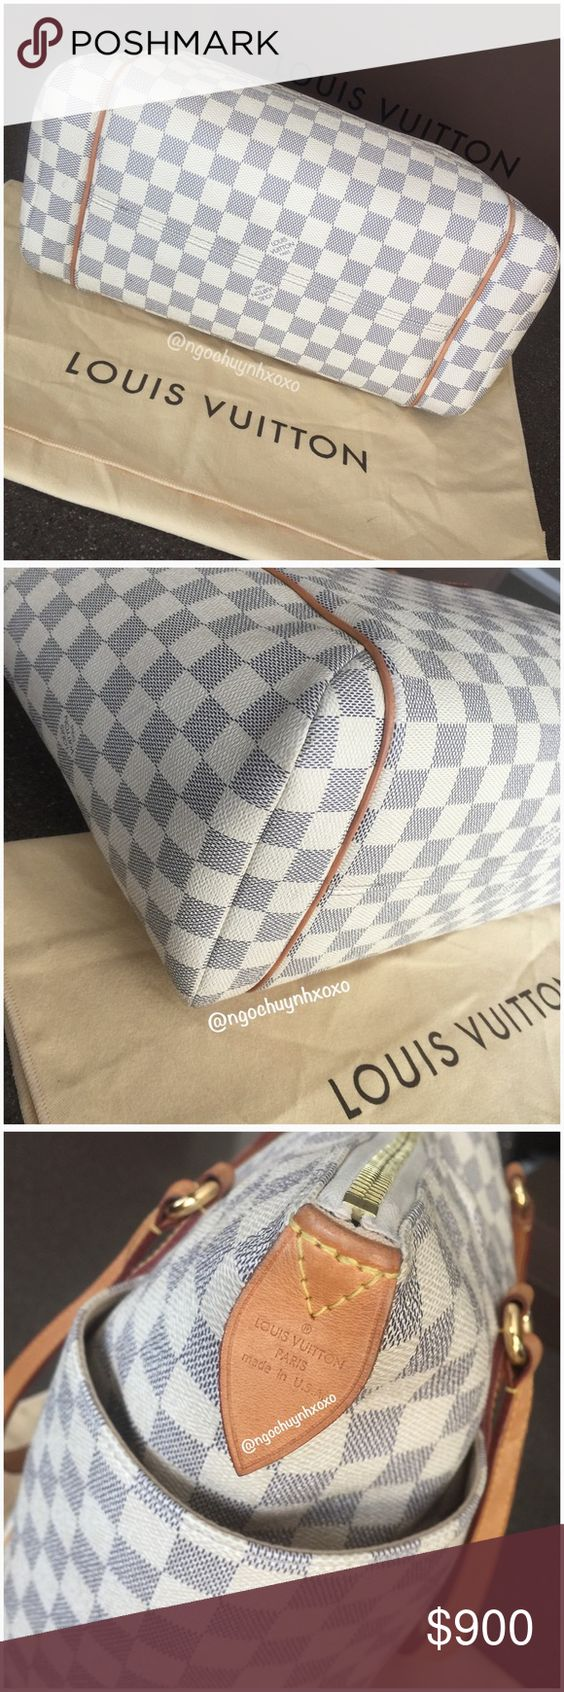 🅿️🅿️$850 Louis Vuitton Totally MM Louis Vuitton Totally || Here are additional pics || More pics on PREVIOUS POST || 🅿️🅿️ $850 || Text: 916.895.1712 Louis Vuitton Bags Shoulder Bags